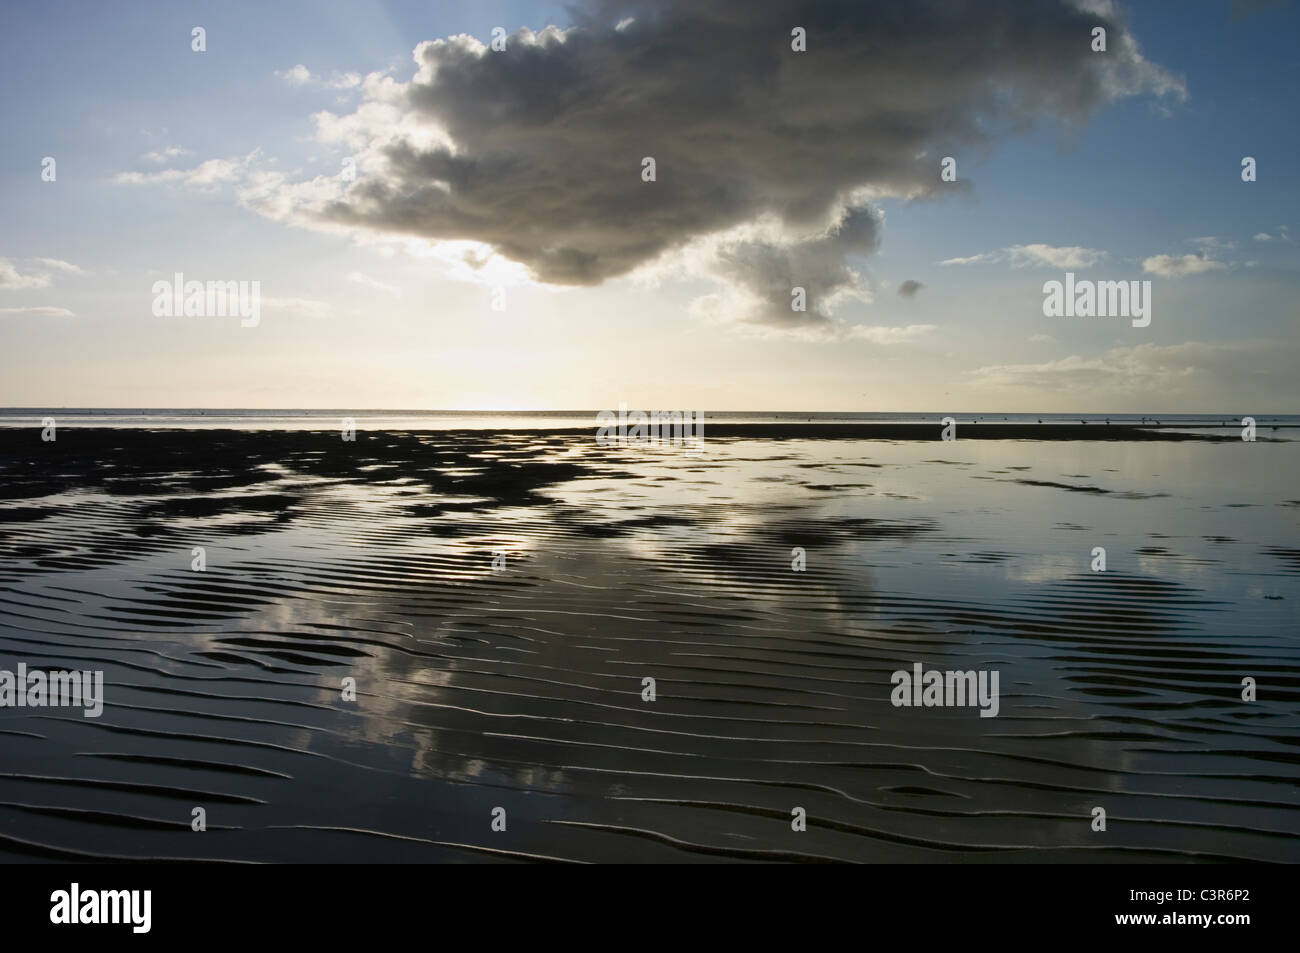 Germany, Schleswig-Holstein, Foehr, View of northern sea with mud flat at dusk - Stock Image